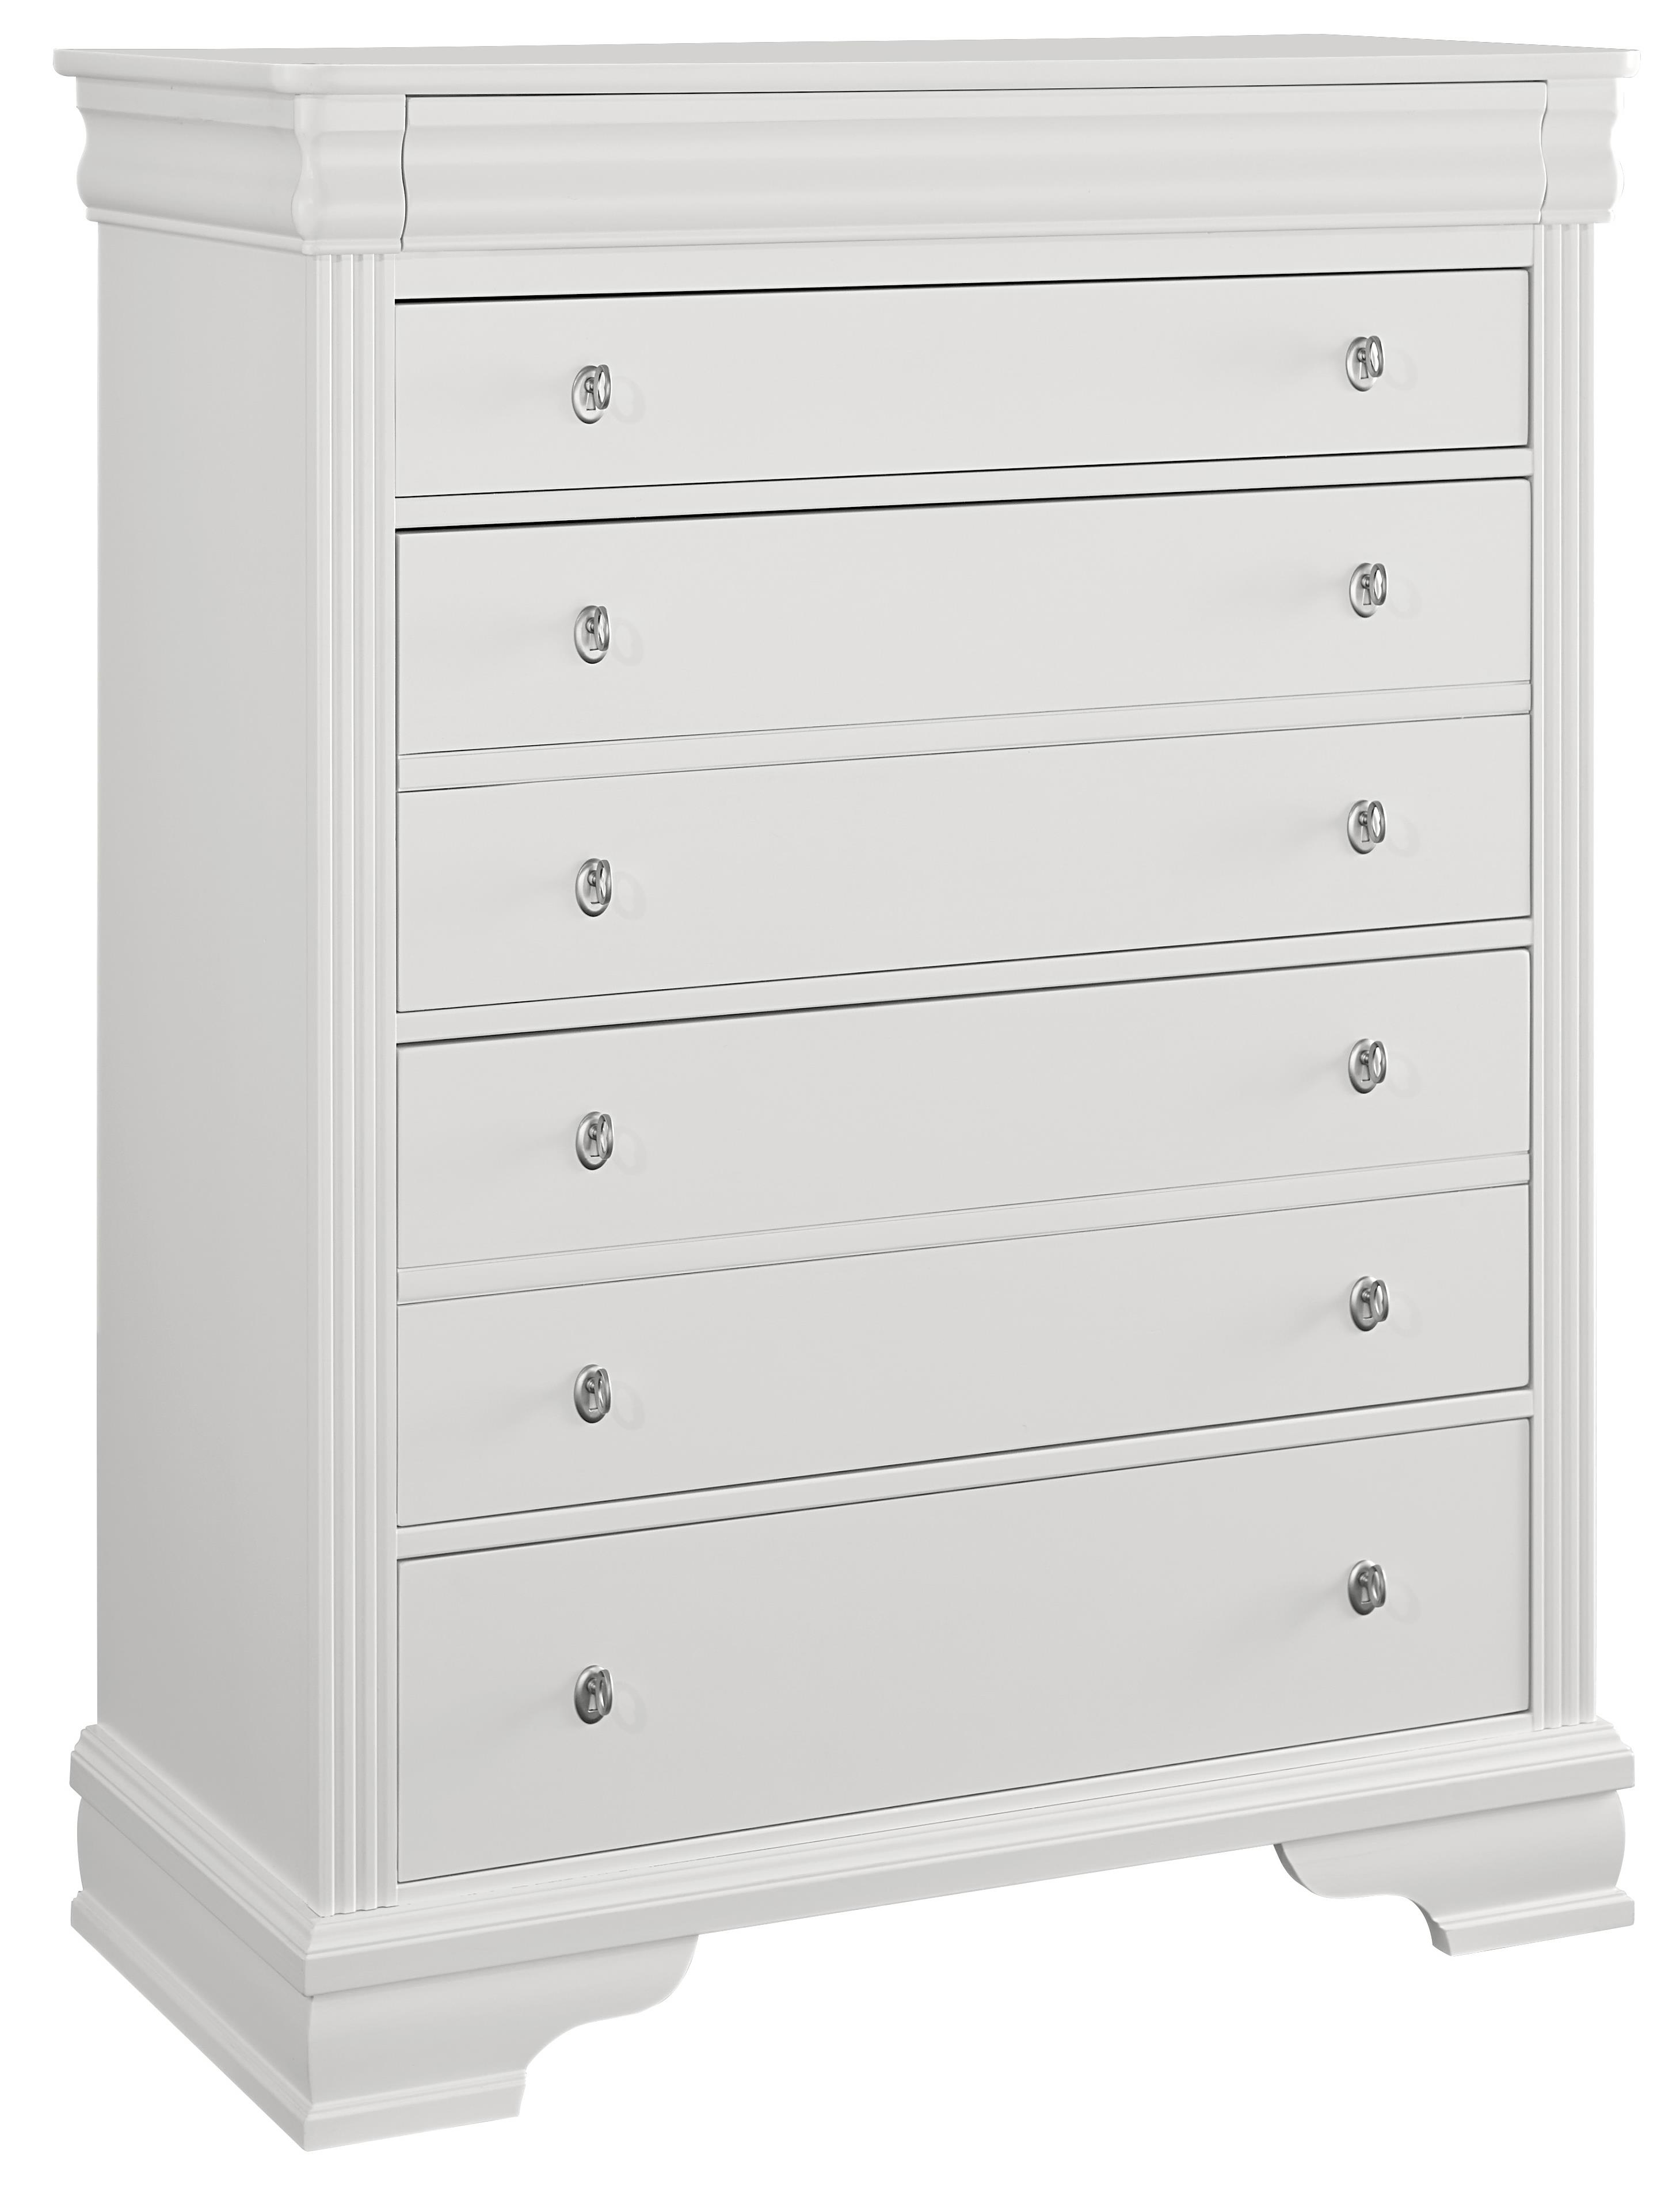 Vaughan Bassett French Market Storage Chest - 5 Drawers - Item Number: 384-115